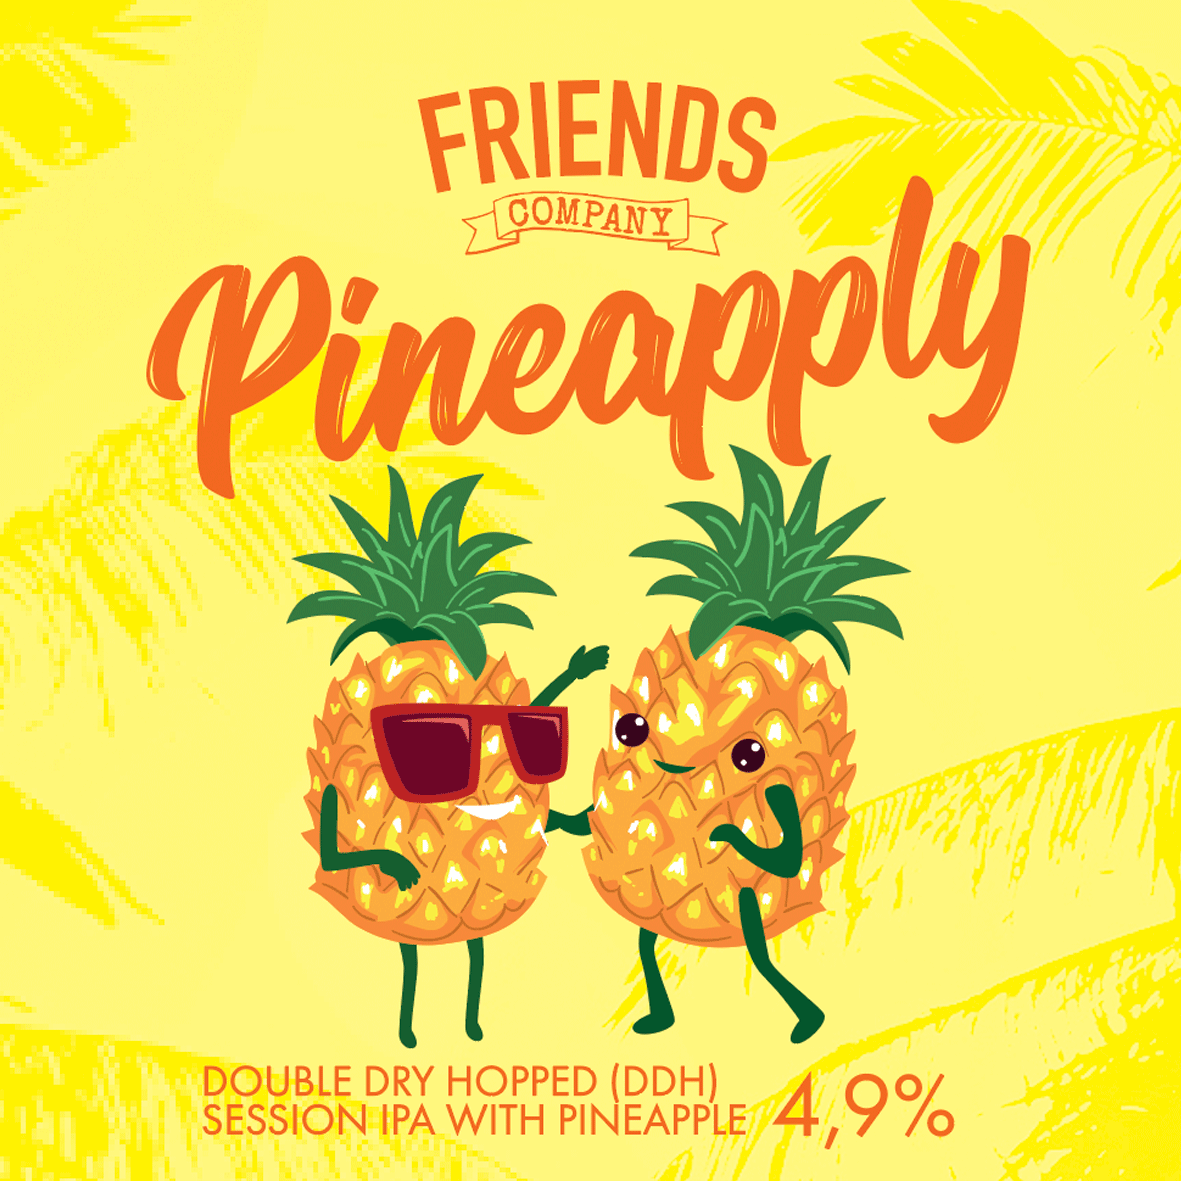 Pineapply-DDH-Session-IPA-100x100mm-300dpi